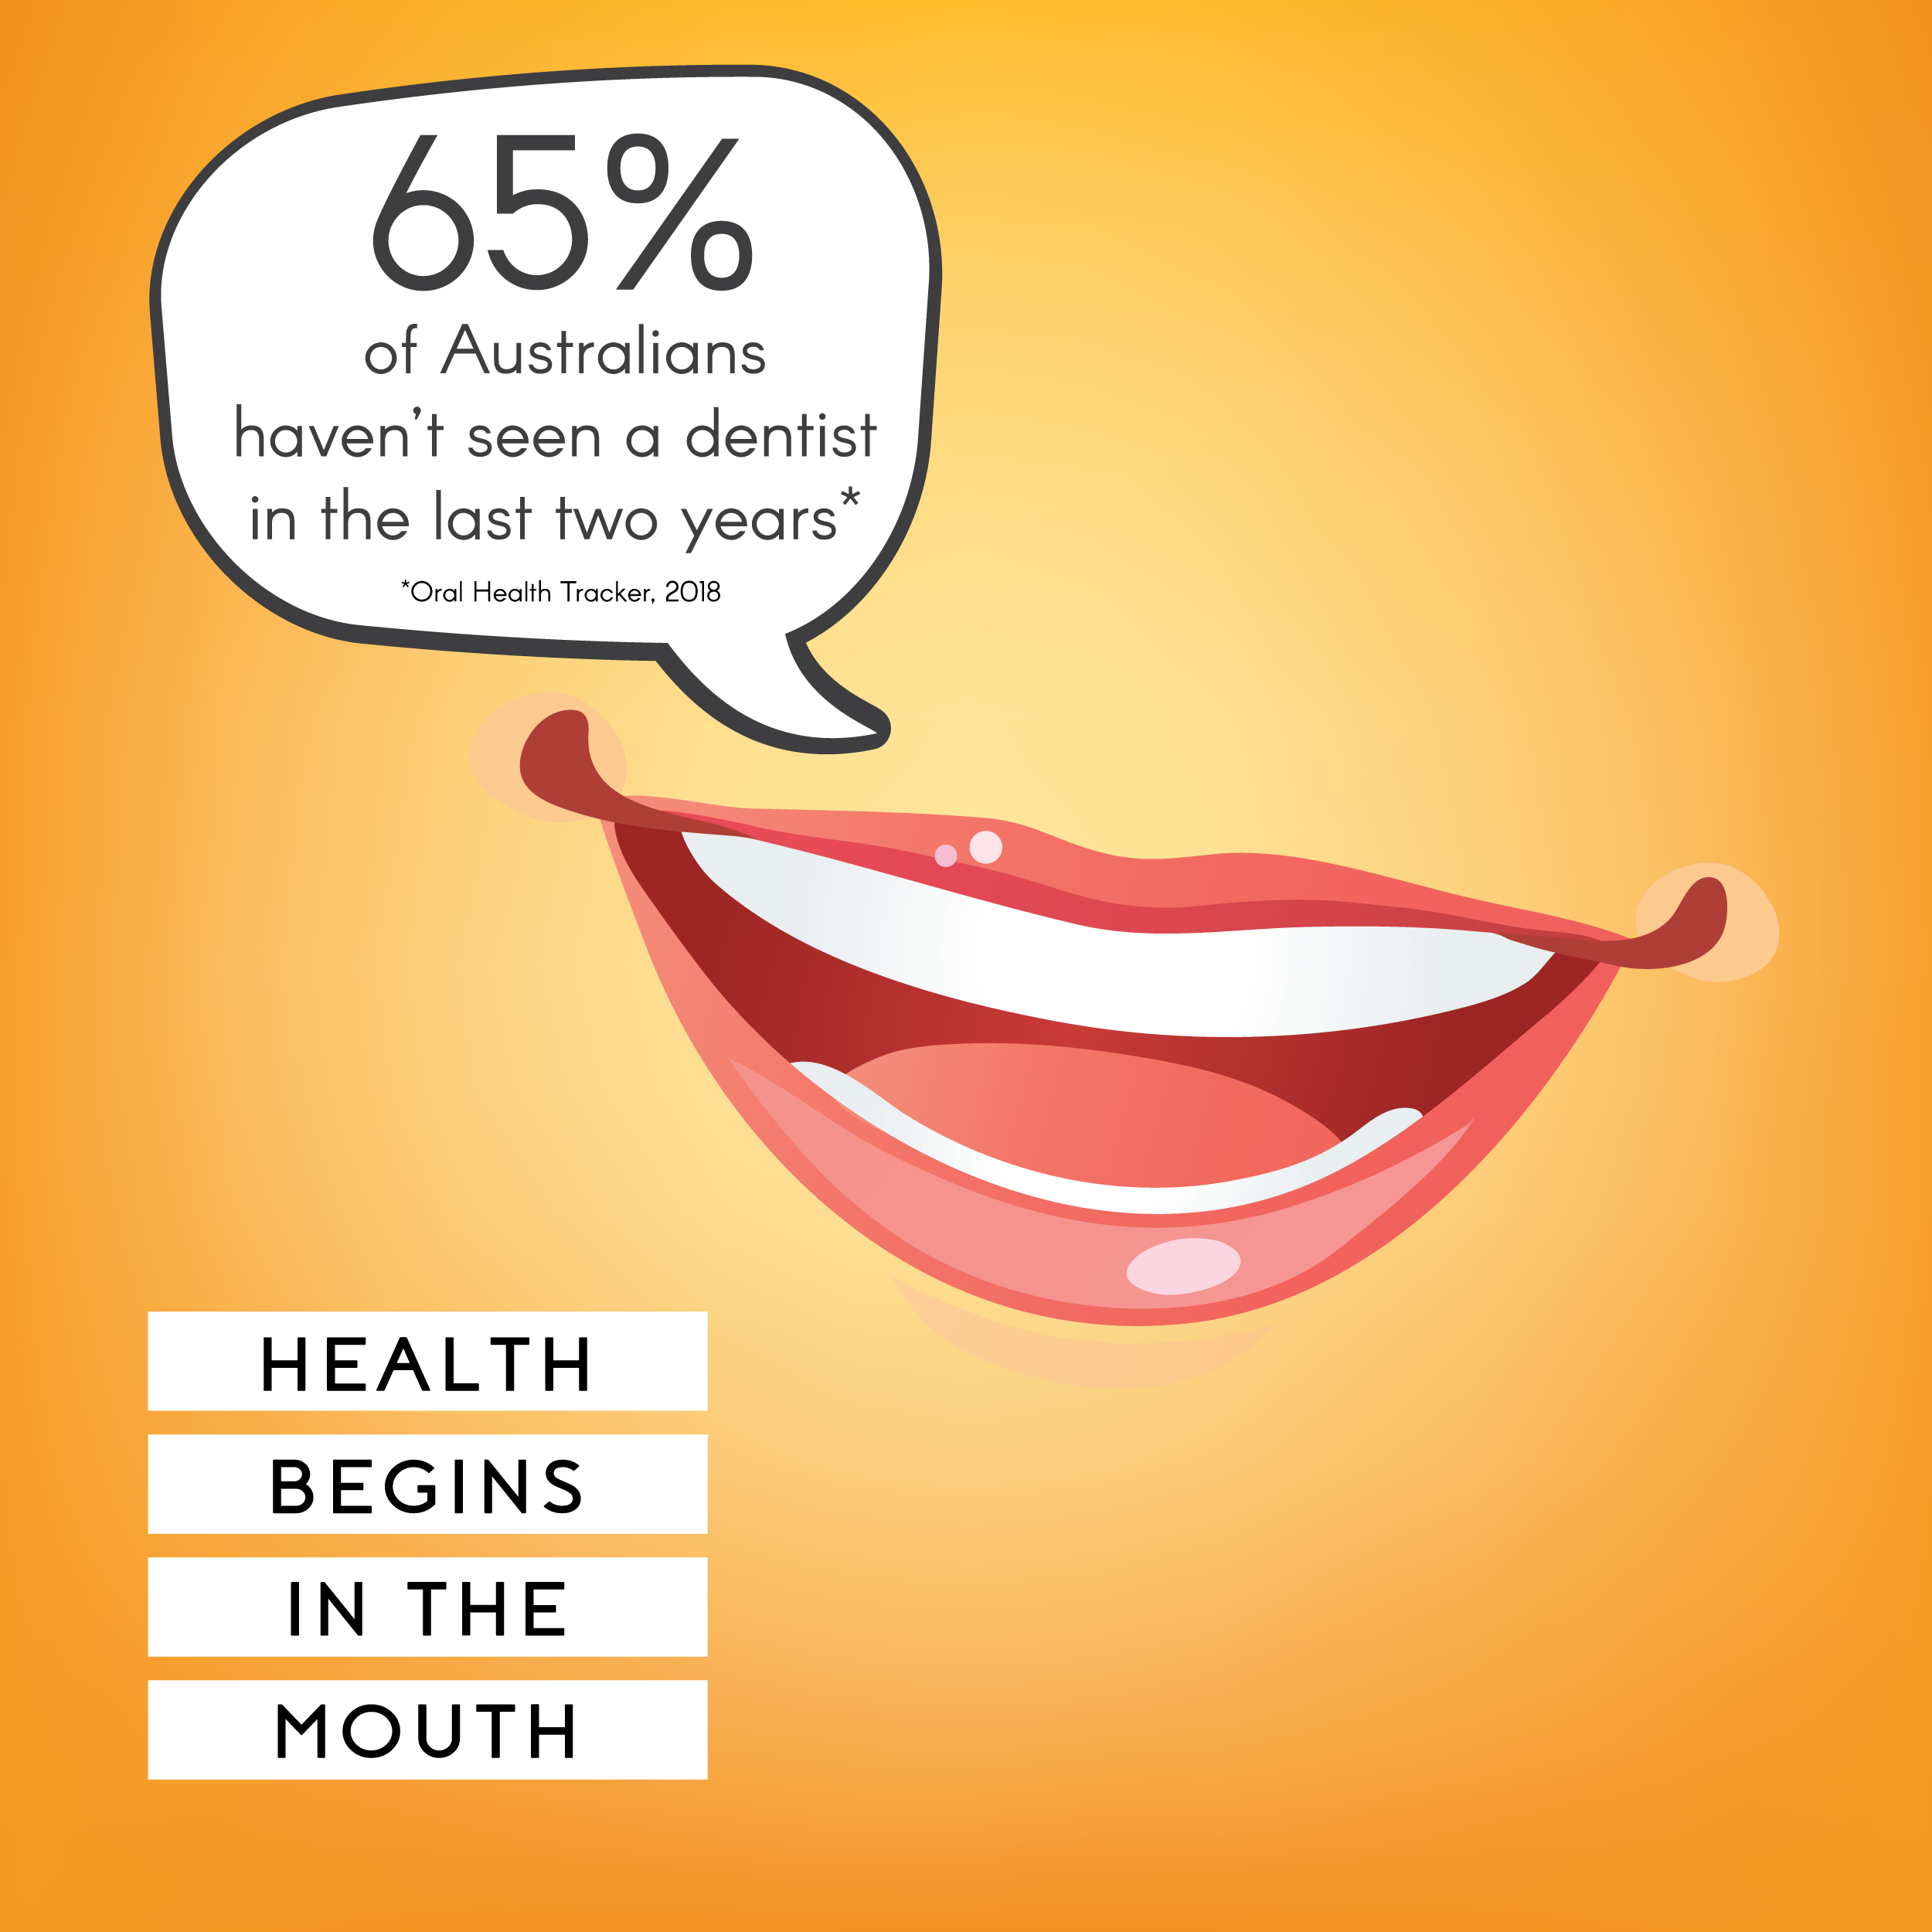 About - Why your visit to the dentist every six months is one of the most important appointments to keep.